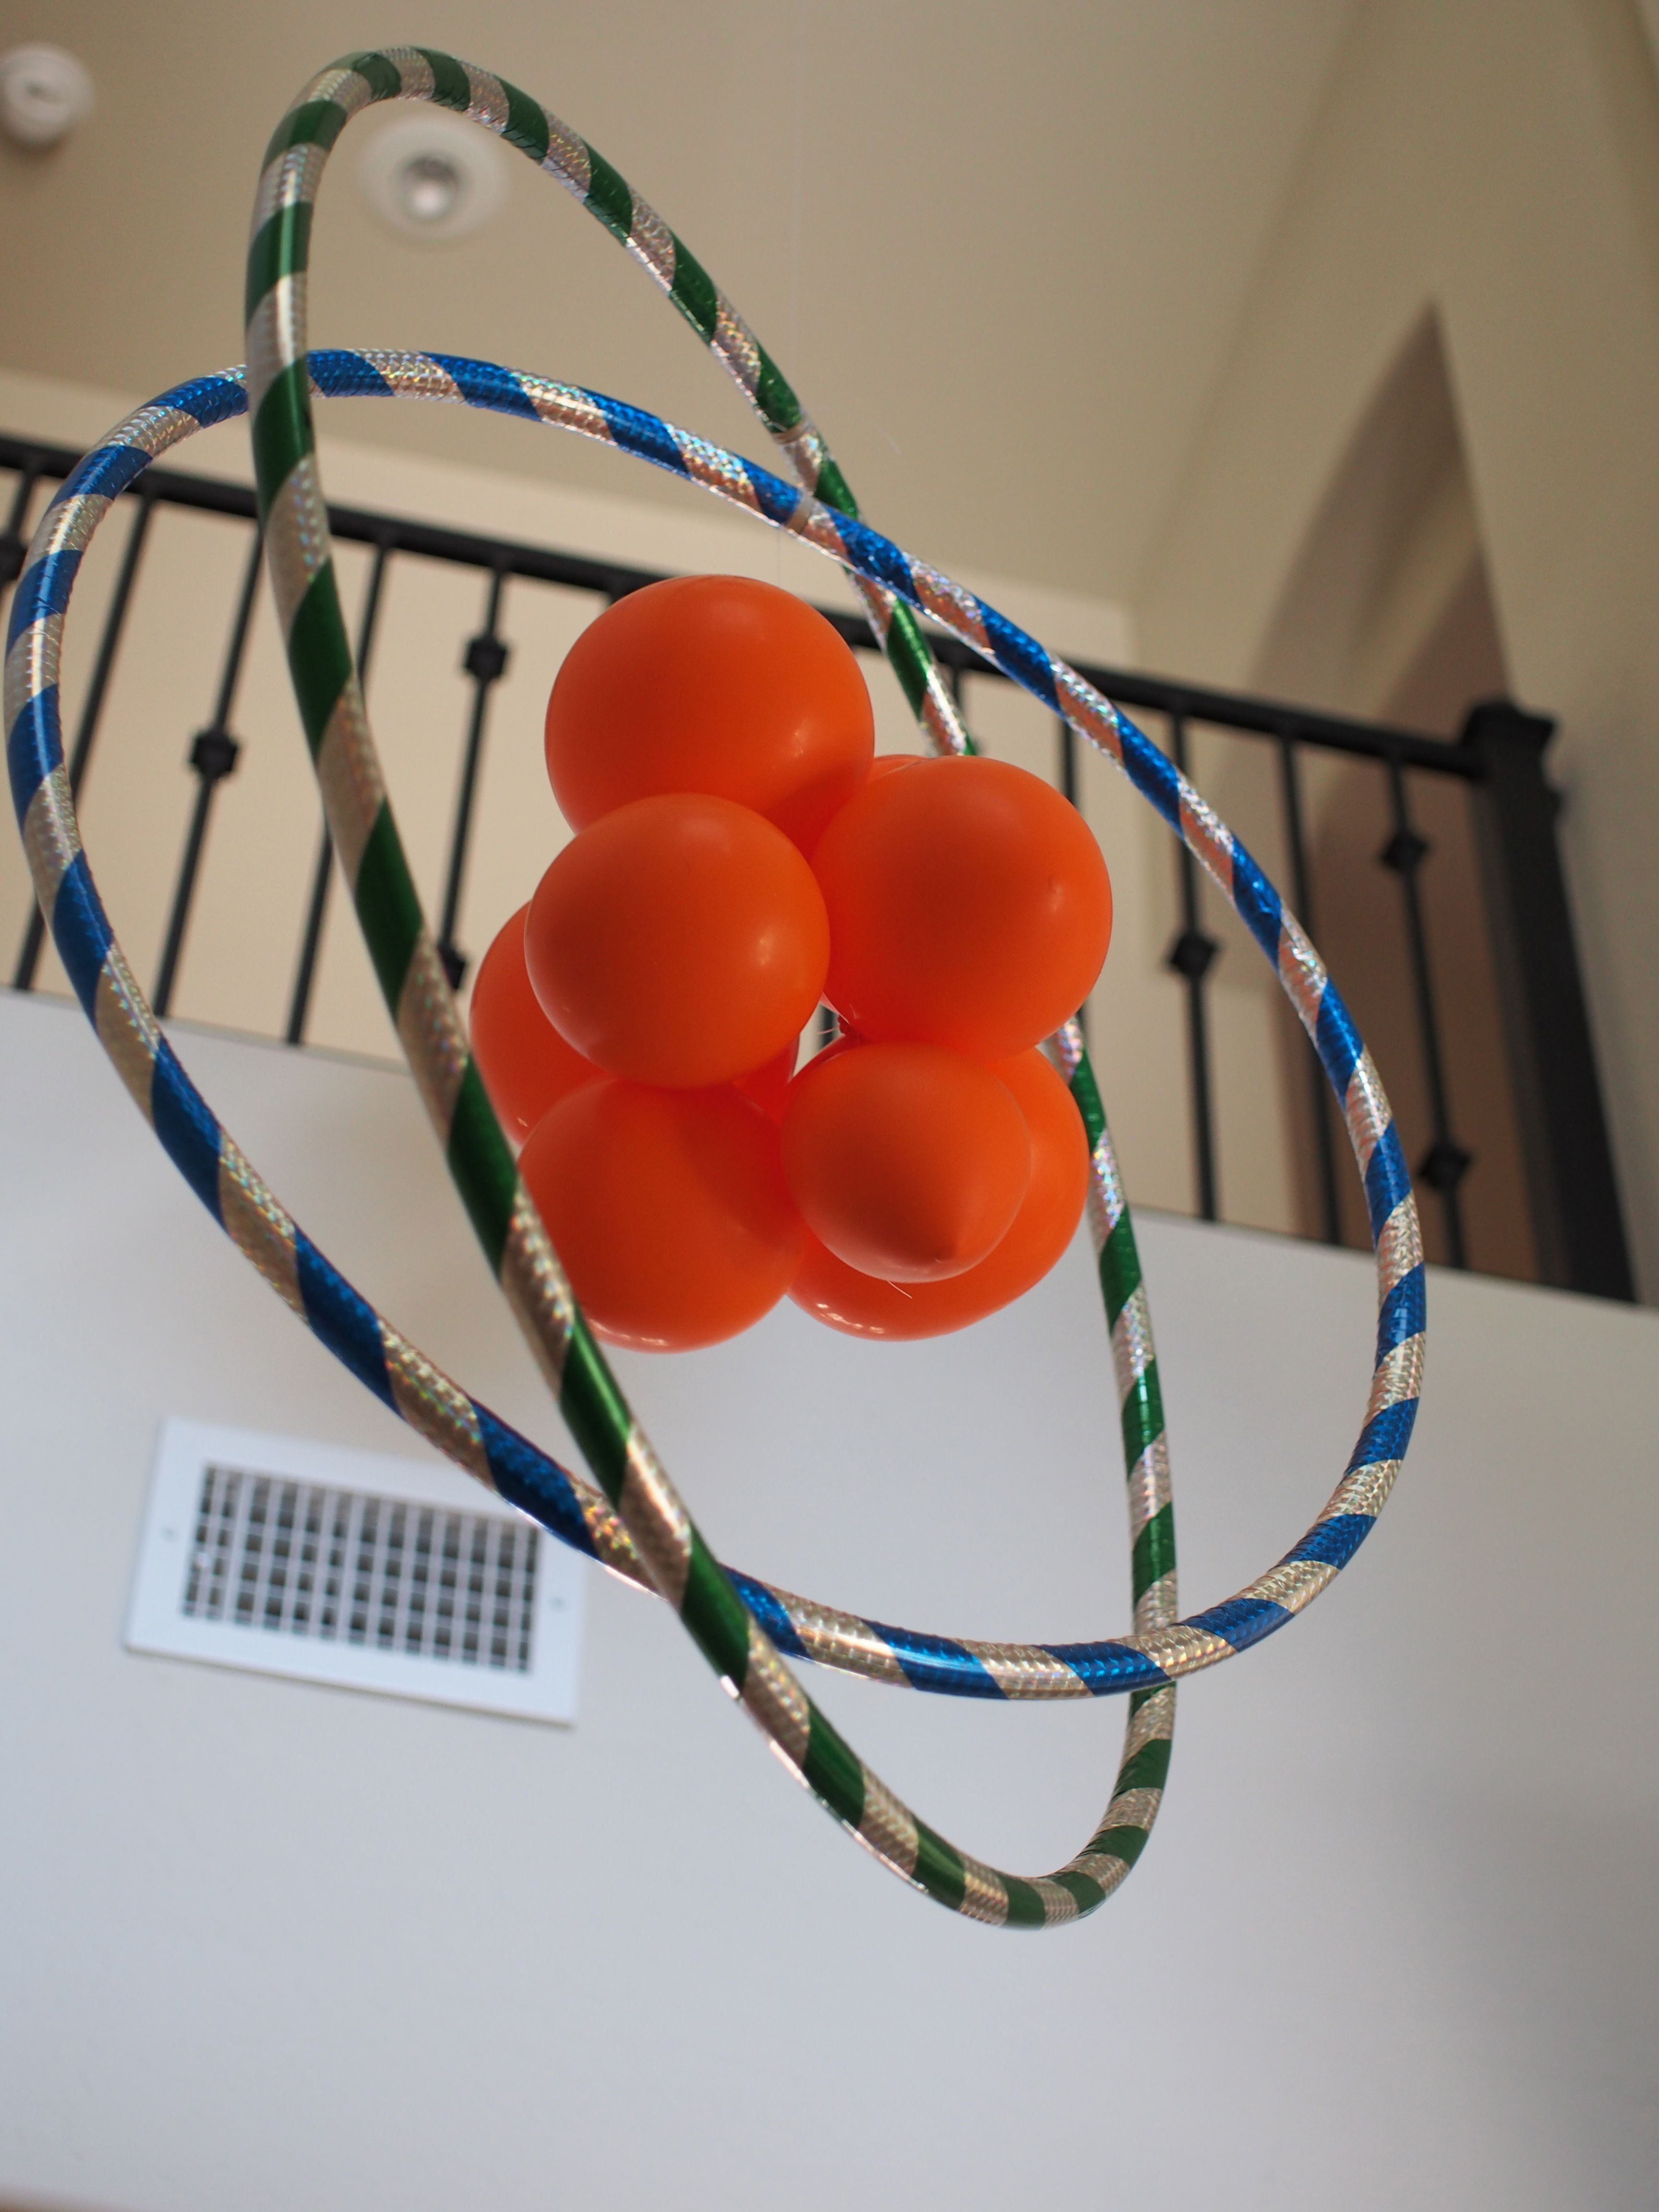 Atom Made With Hula Hoops And Balloons